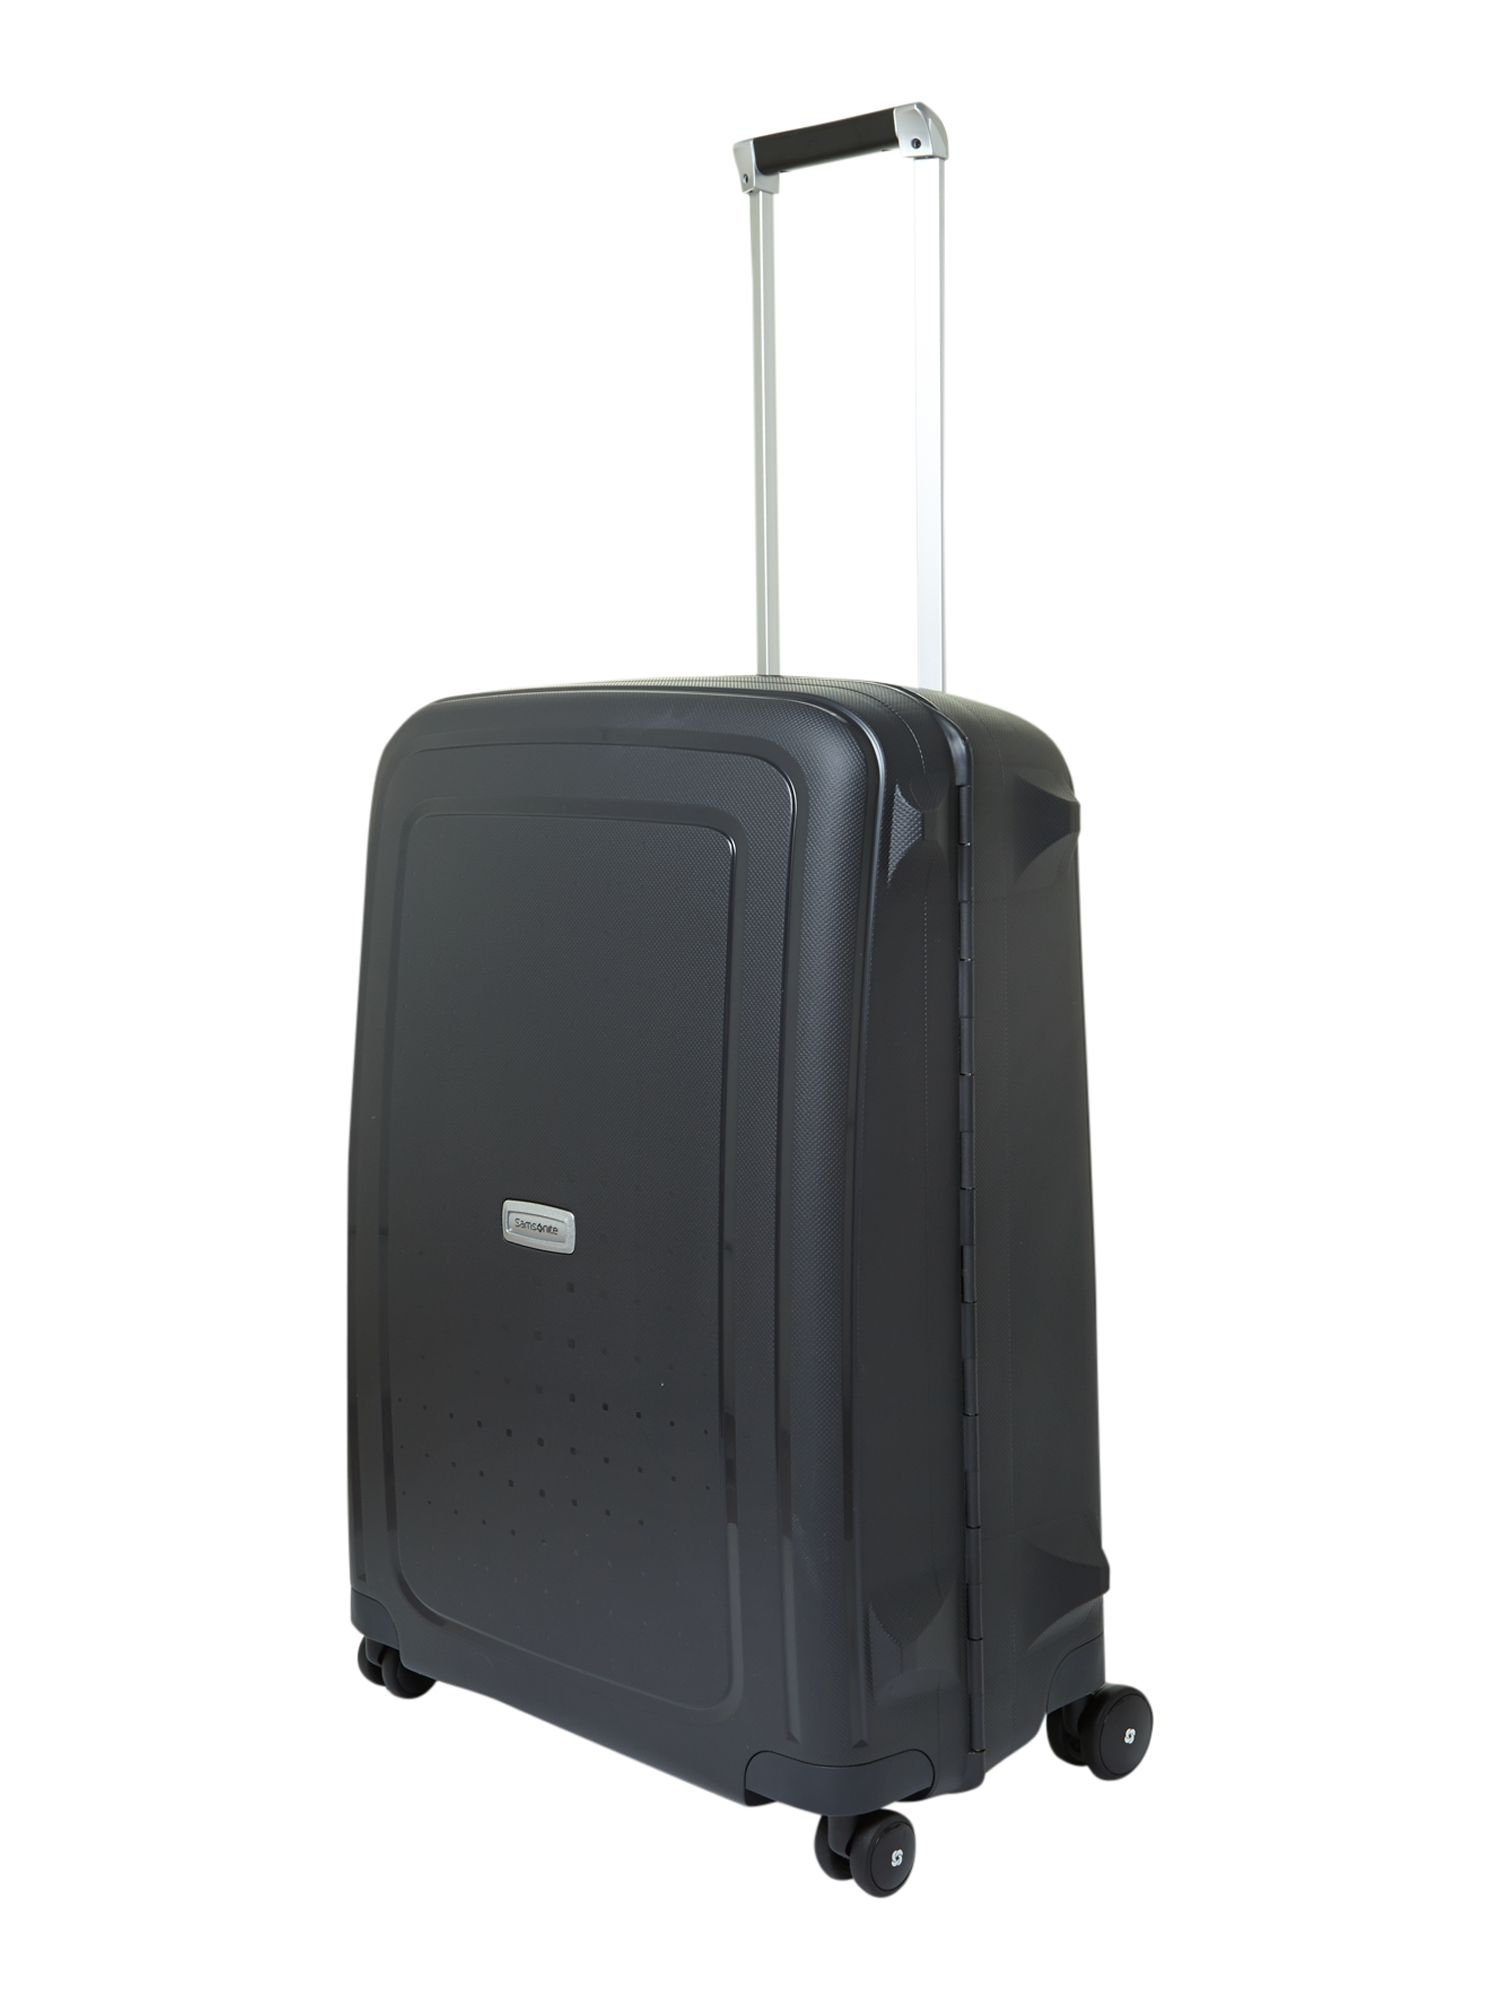 Samsonite SCure deluxe black medium case Black